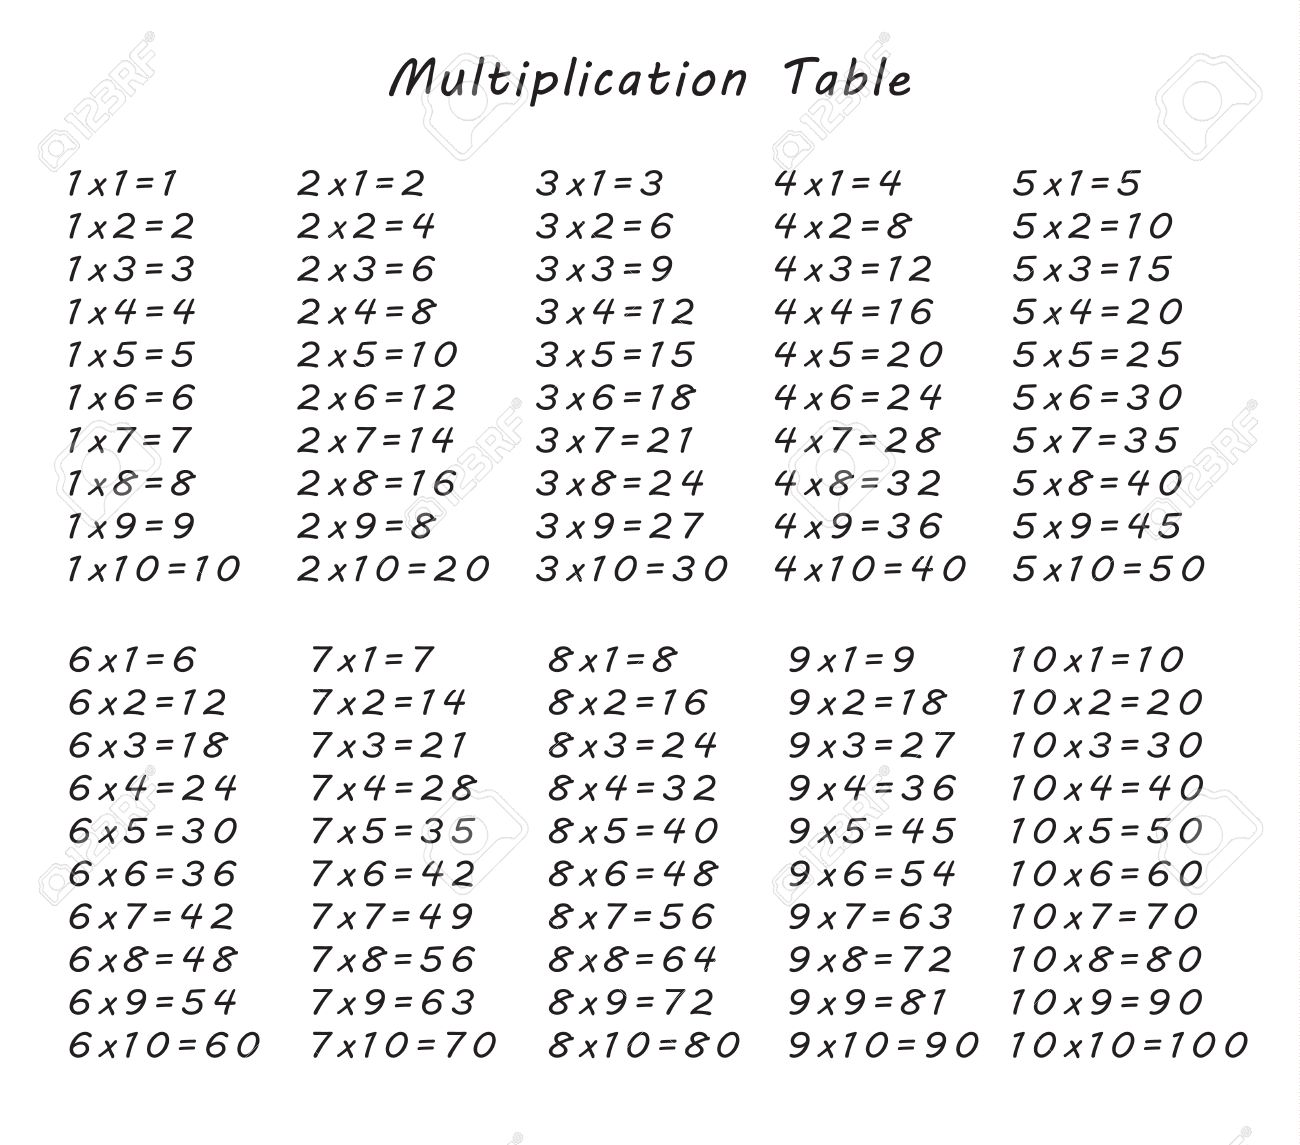 Multiplication table between 1 to 10 as educational material multiplication table between 1 to 10 as educational material for primary school stock vector 54666395 gamestrikefo Image collections